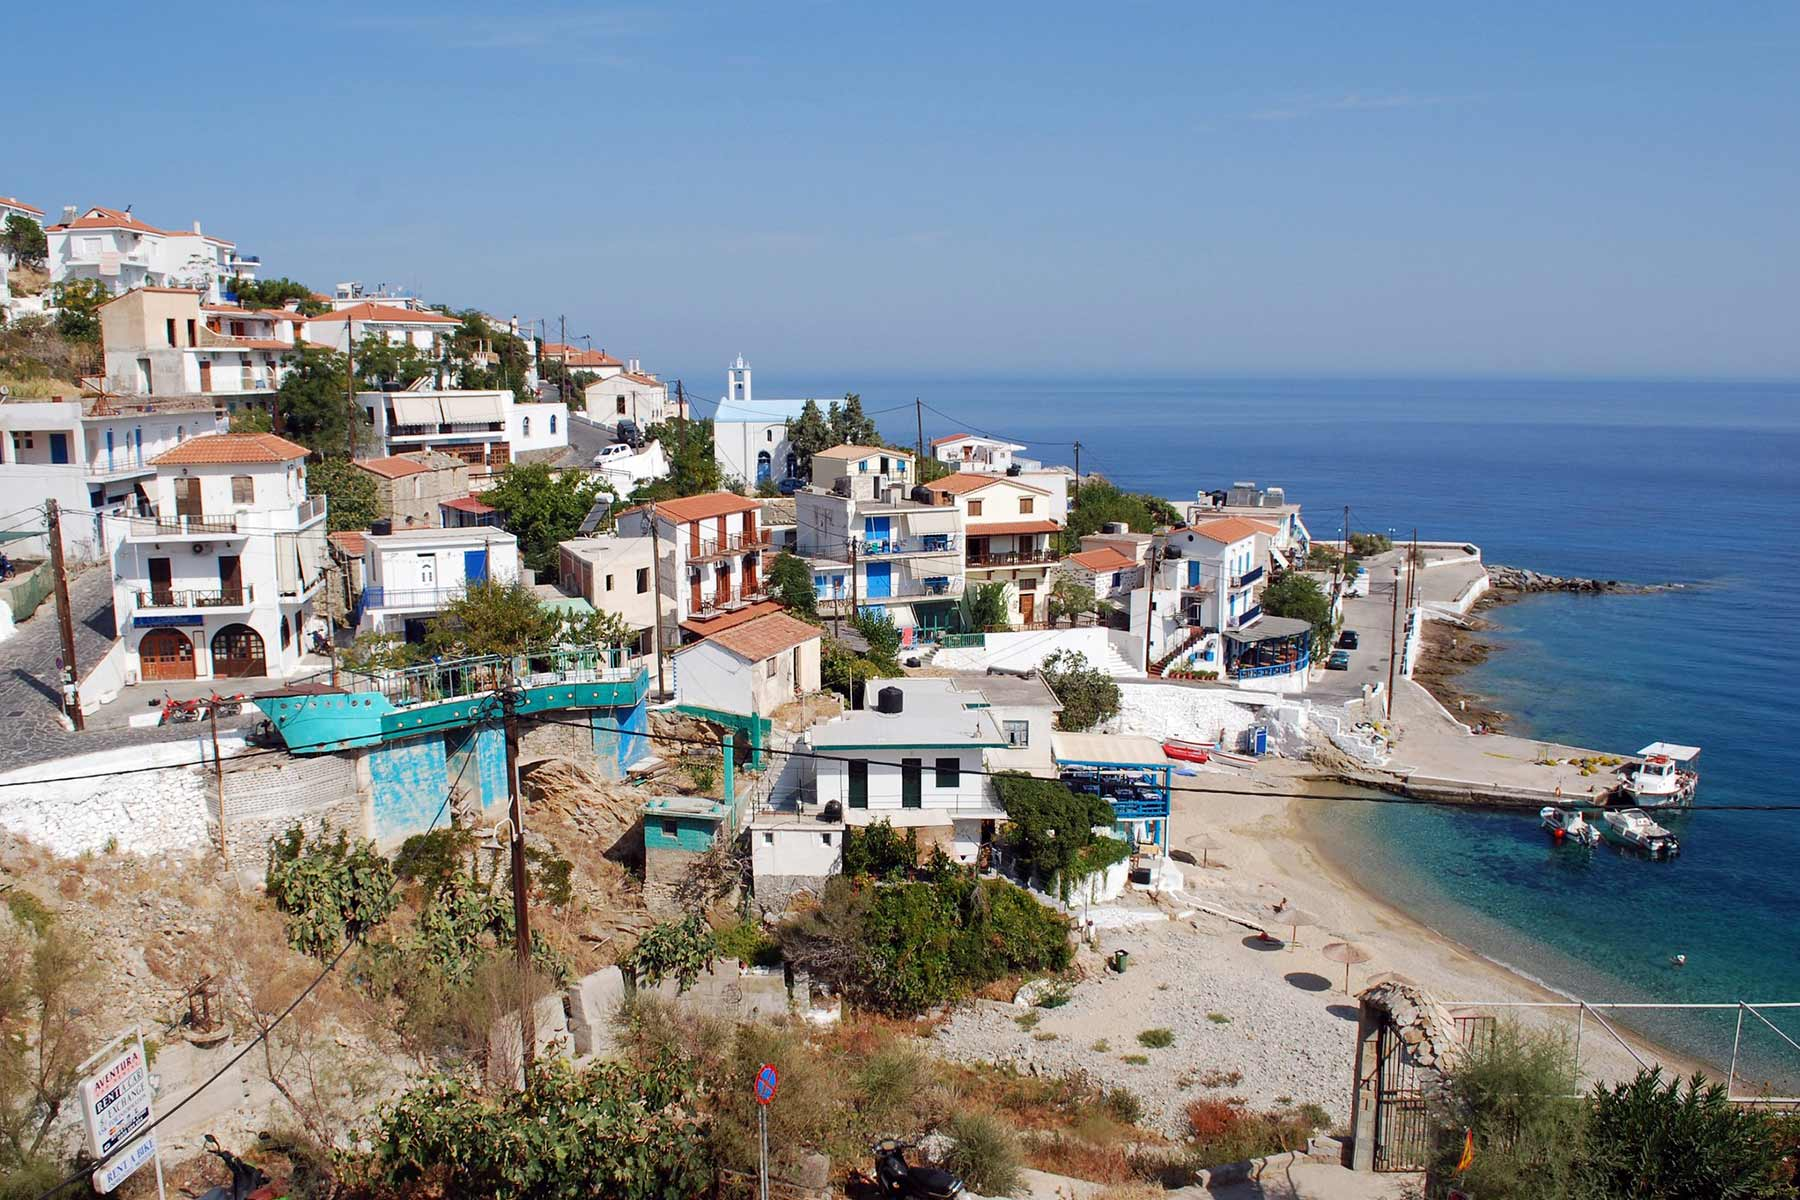 City and coastline view of Ikaria Island in Greece